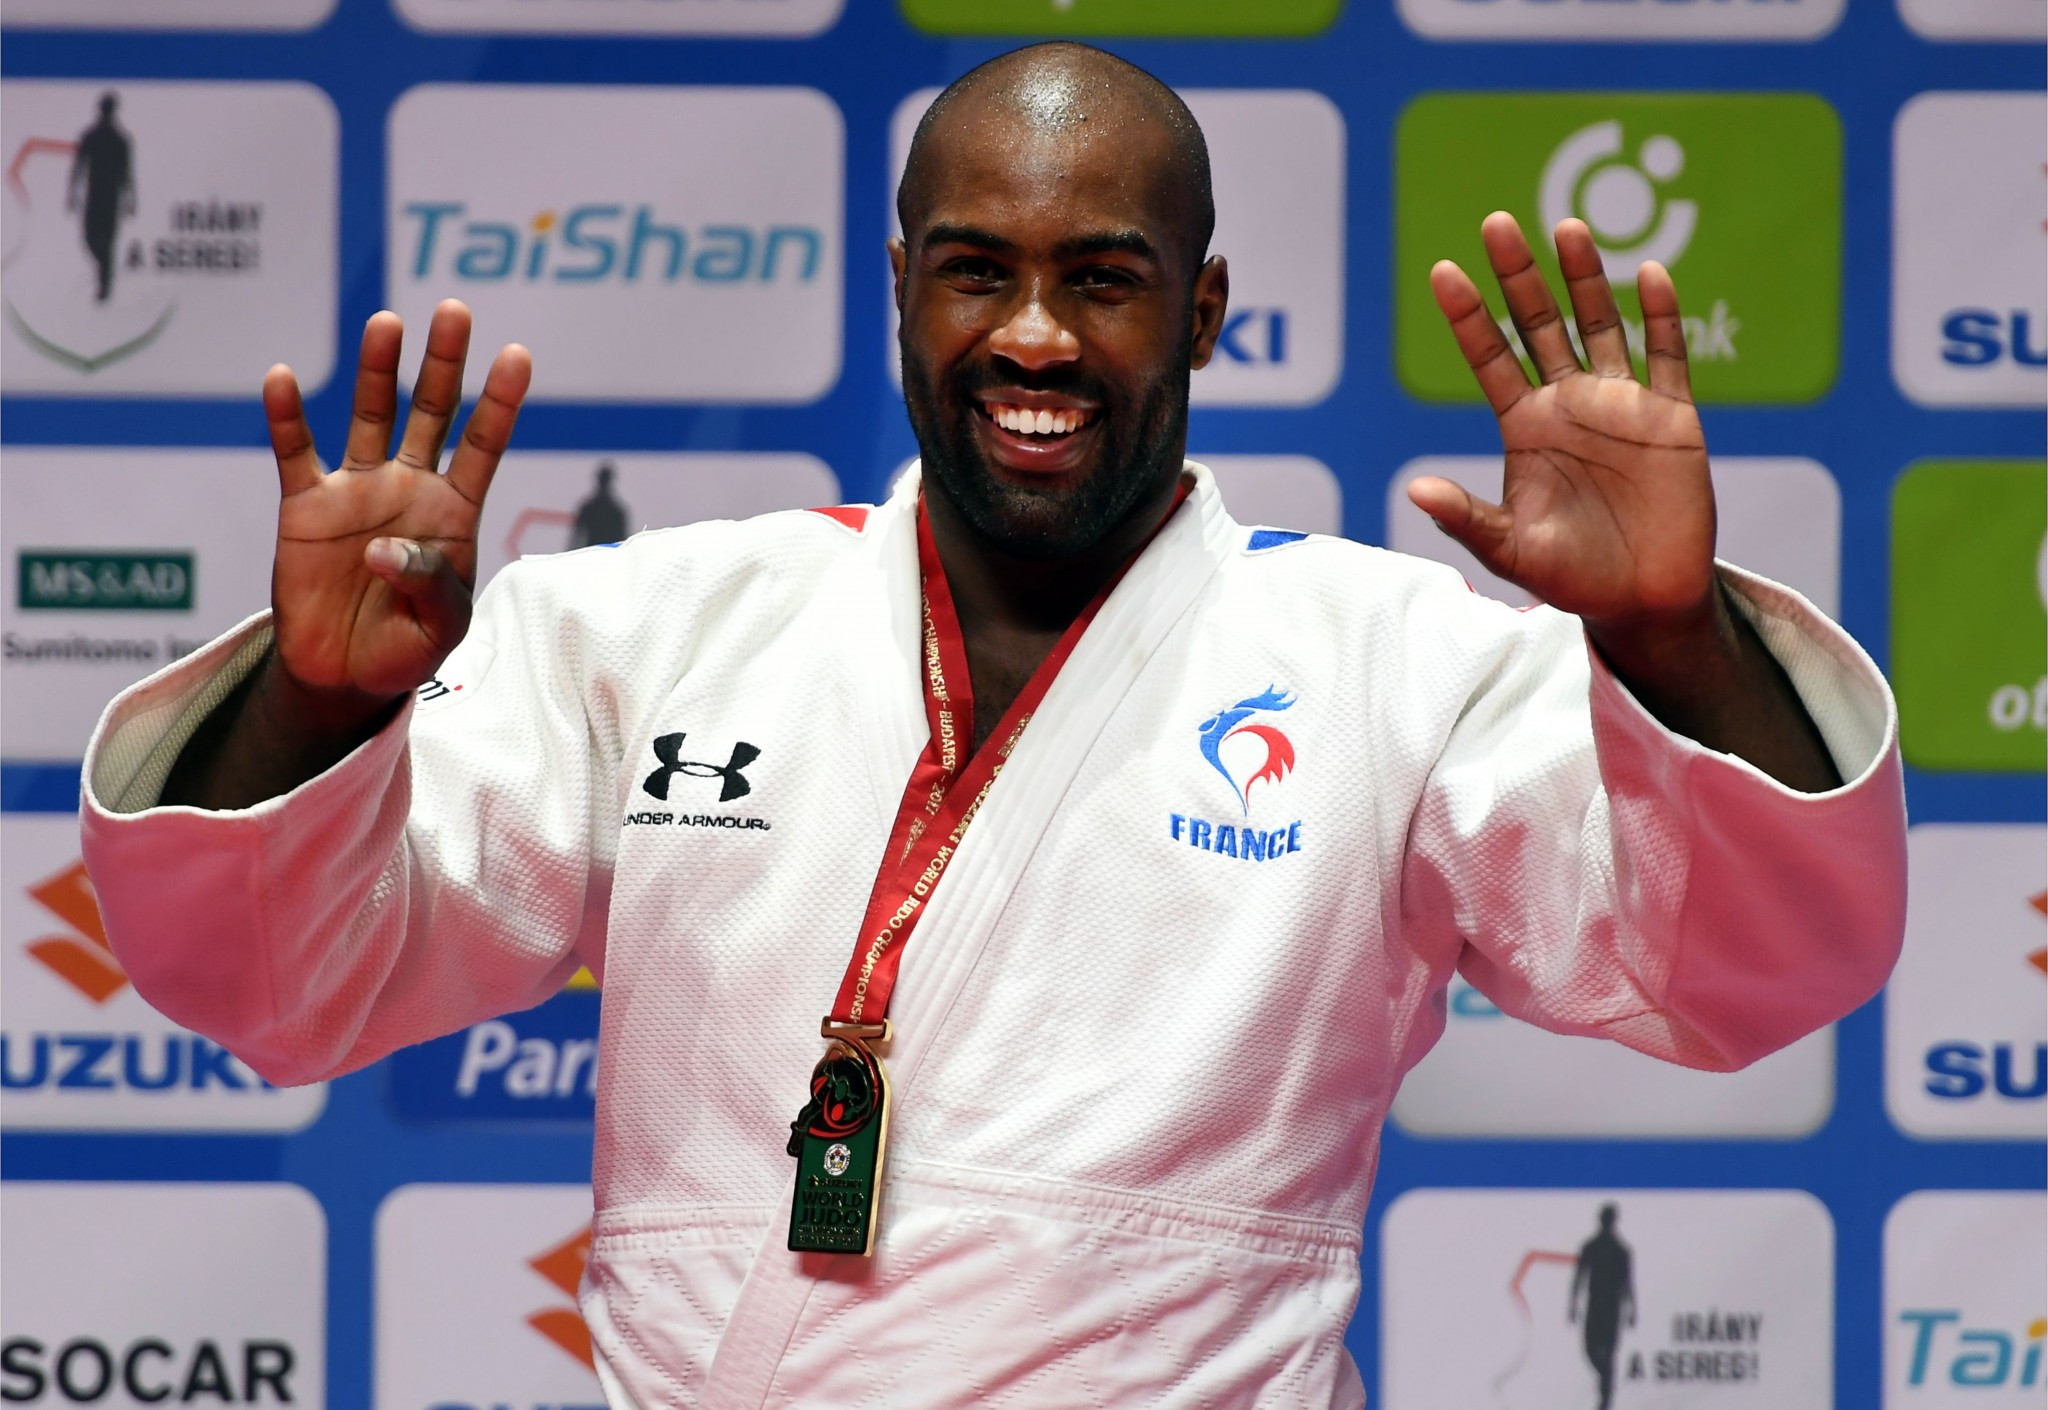 Riner secures ninth title and stretches winning streak to 134 matches at IJF World Championships